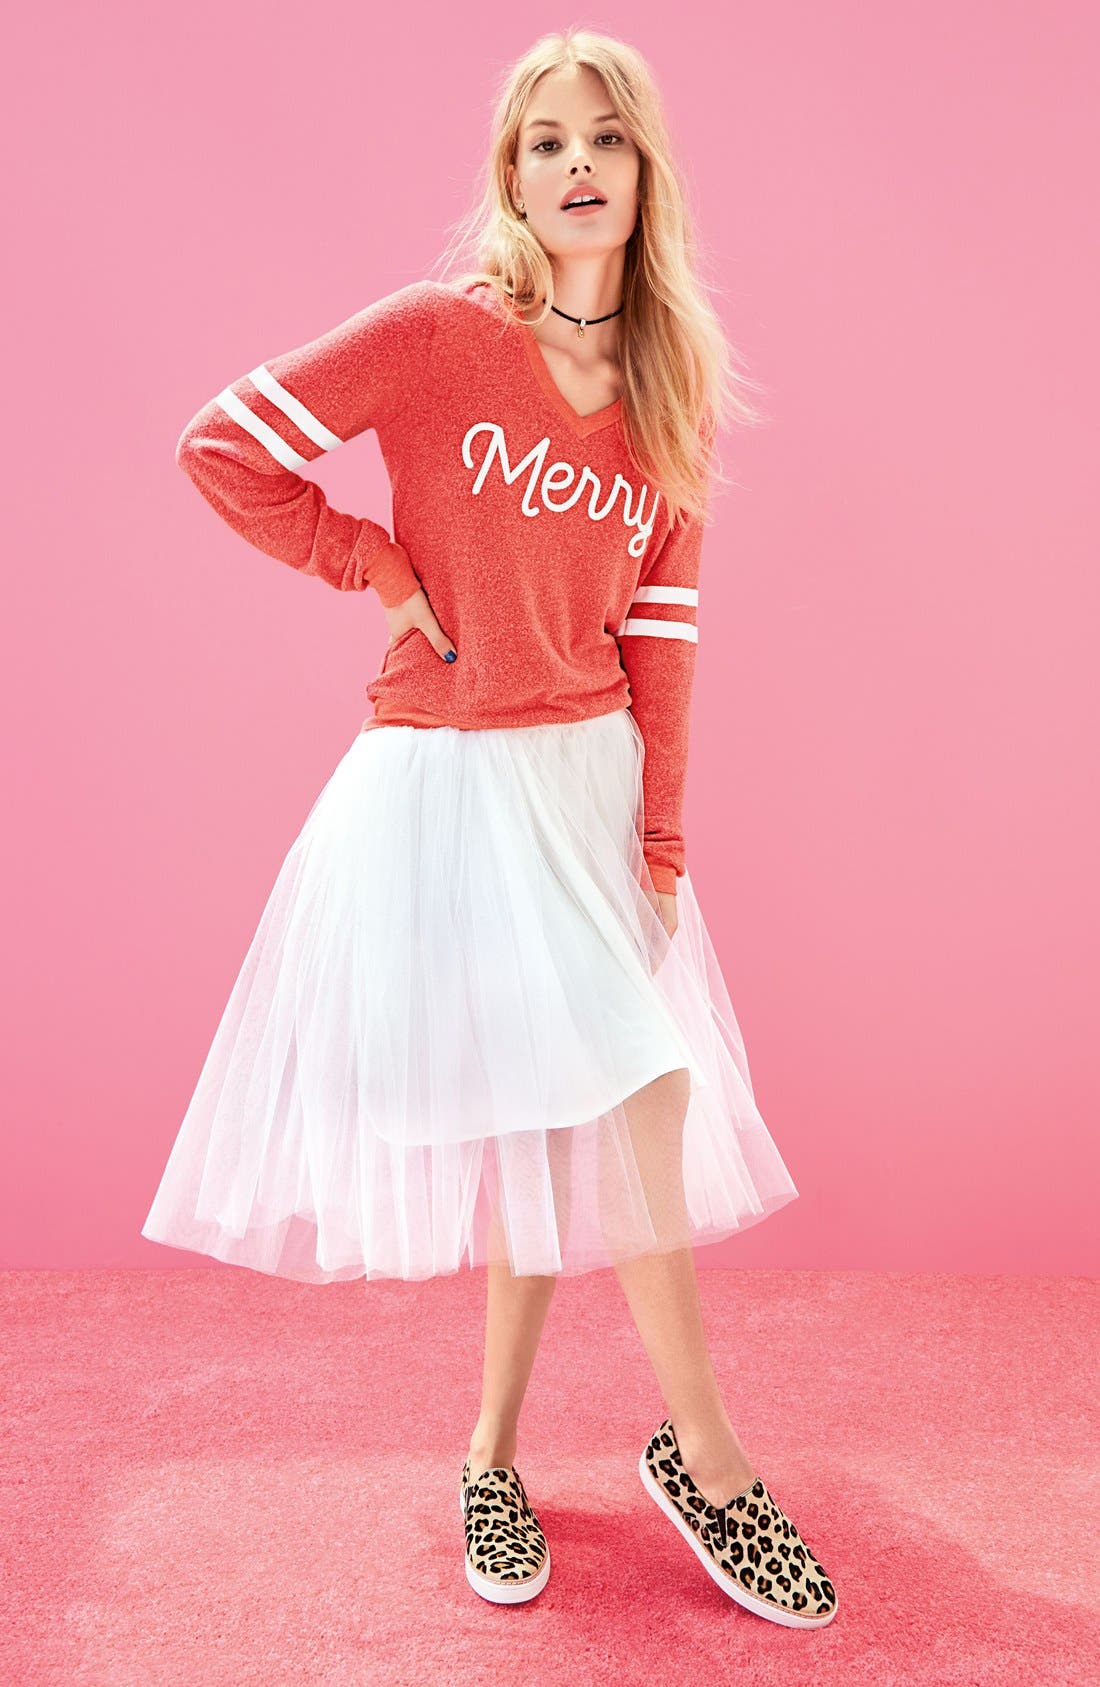 Baggy Beach Jumper - Merry Pullover,                             Alternate thumbnail 6, color,                             620